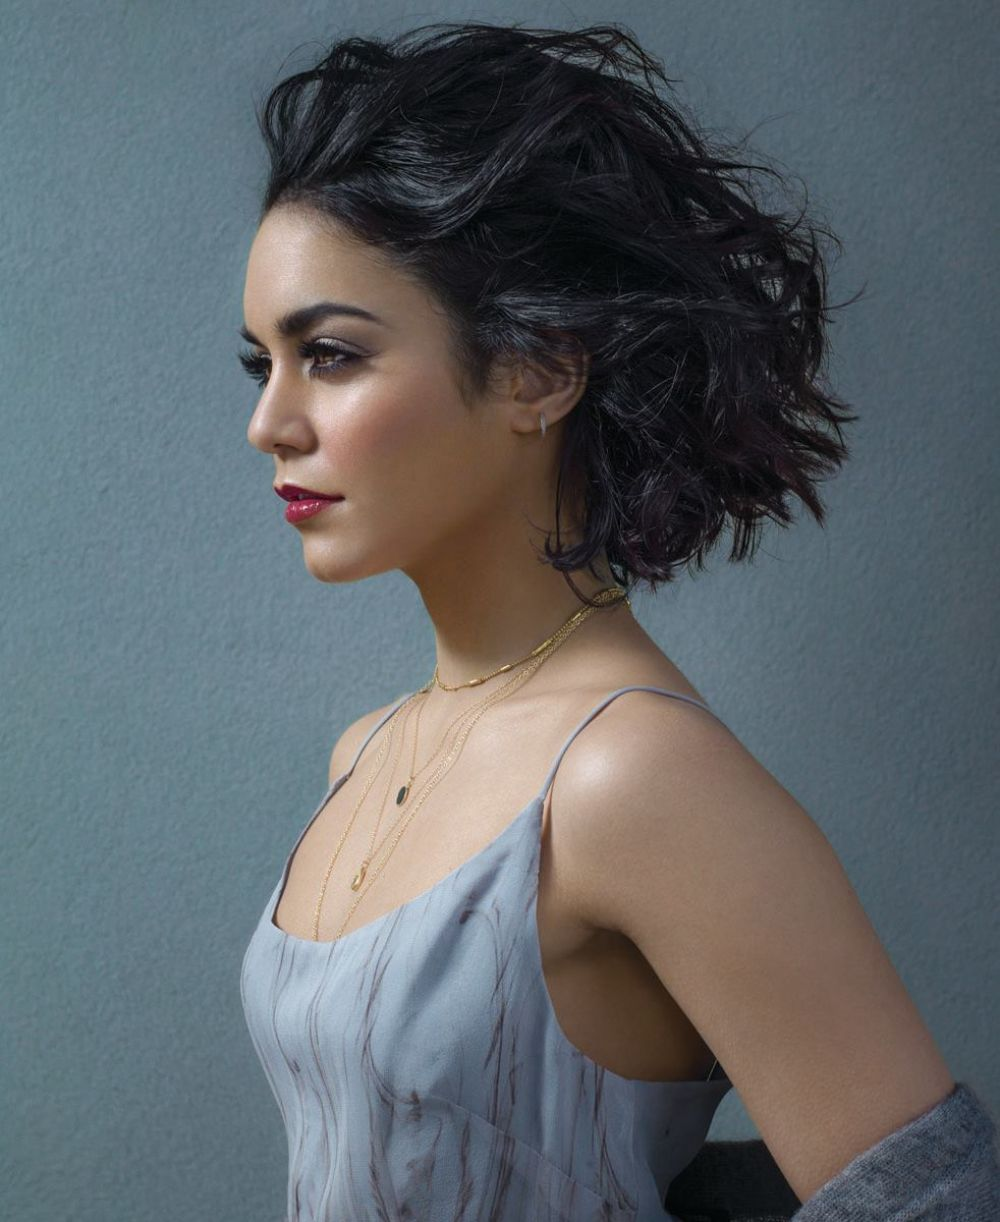 Vanessa Hudgens In Social Life Magazine May 2015 Issue